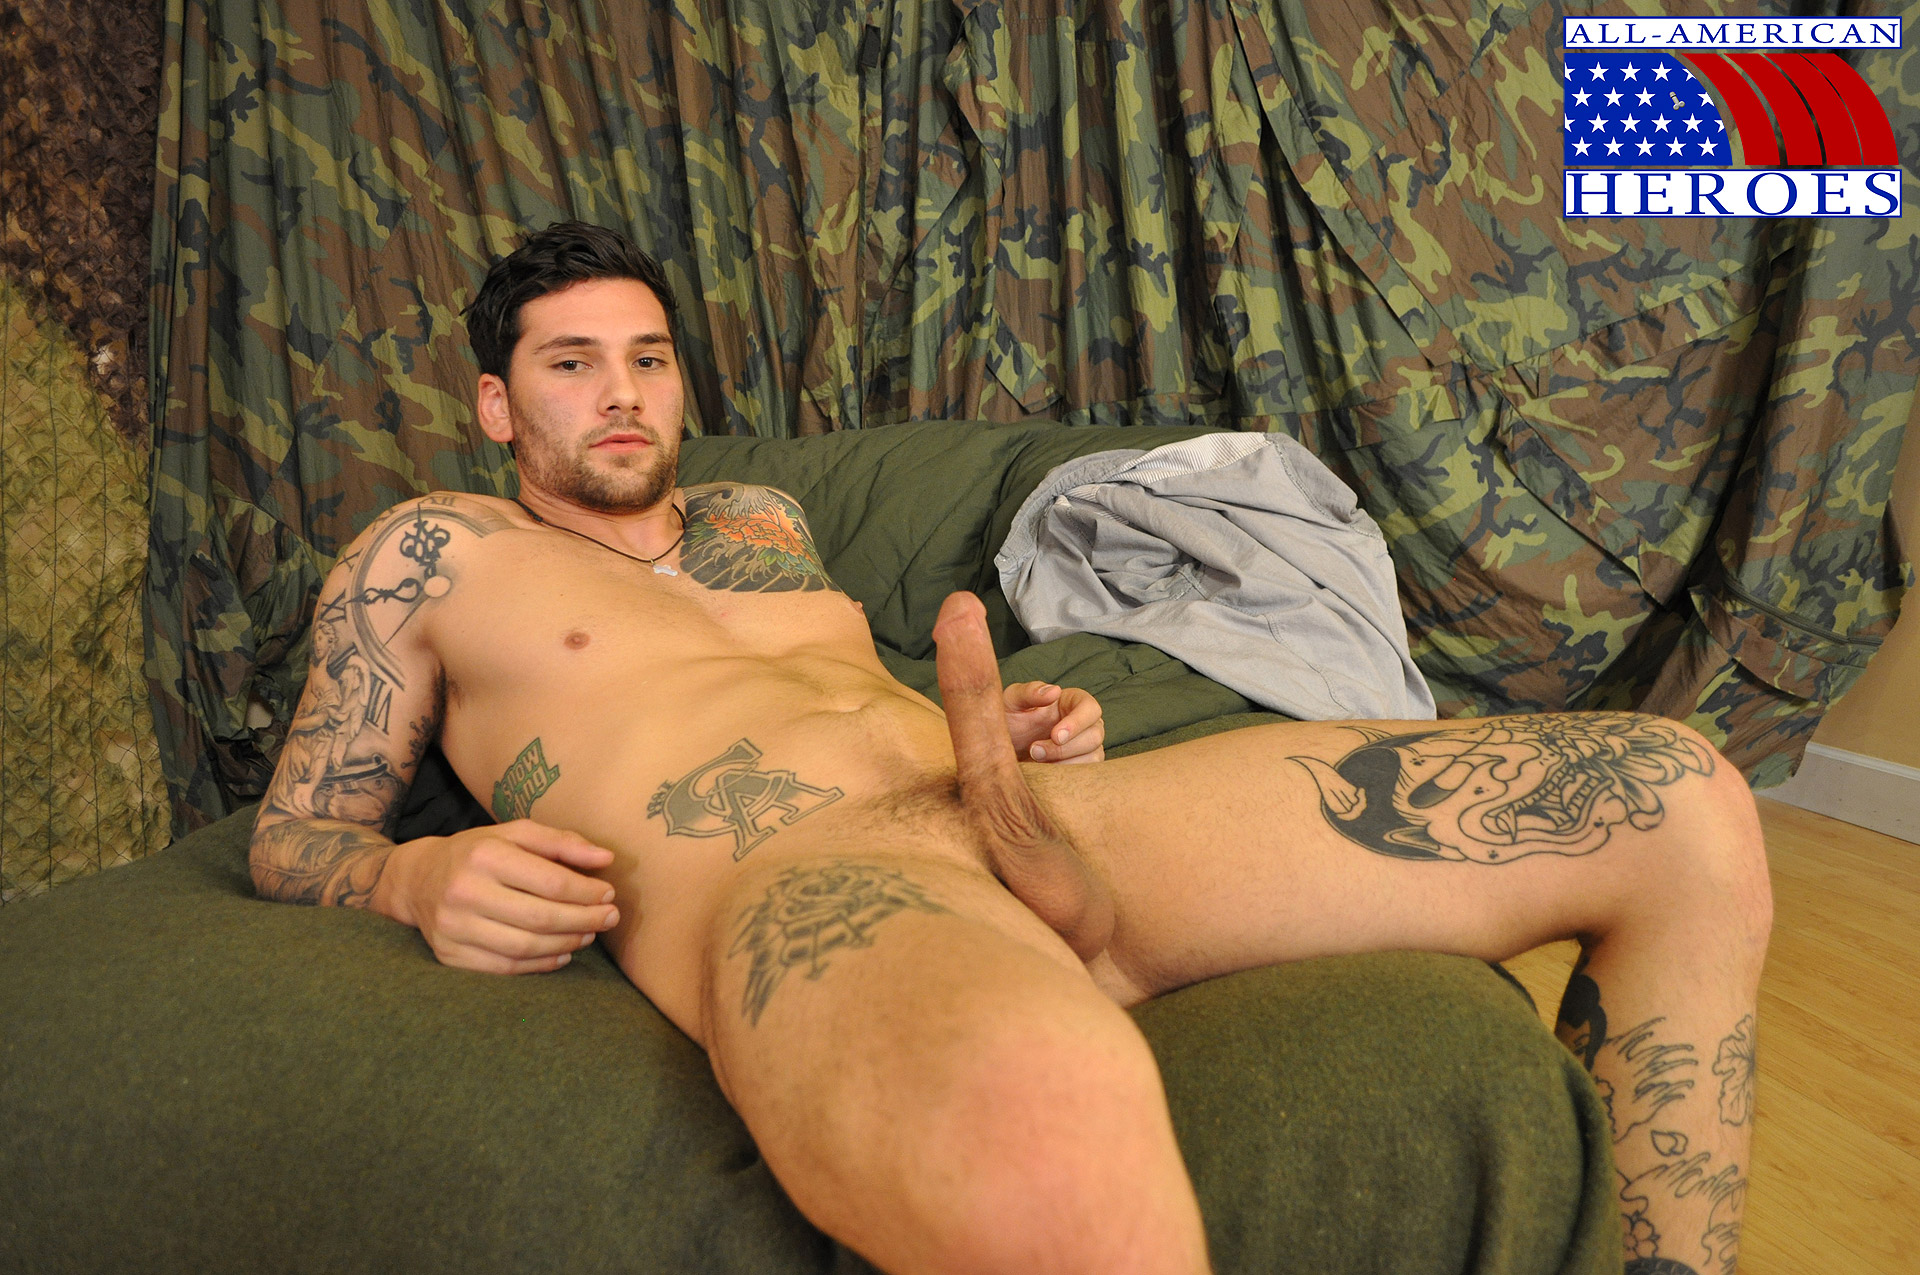 Landonallamericanheros-2  The Man Crush Blog-2148